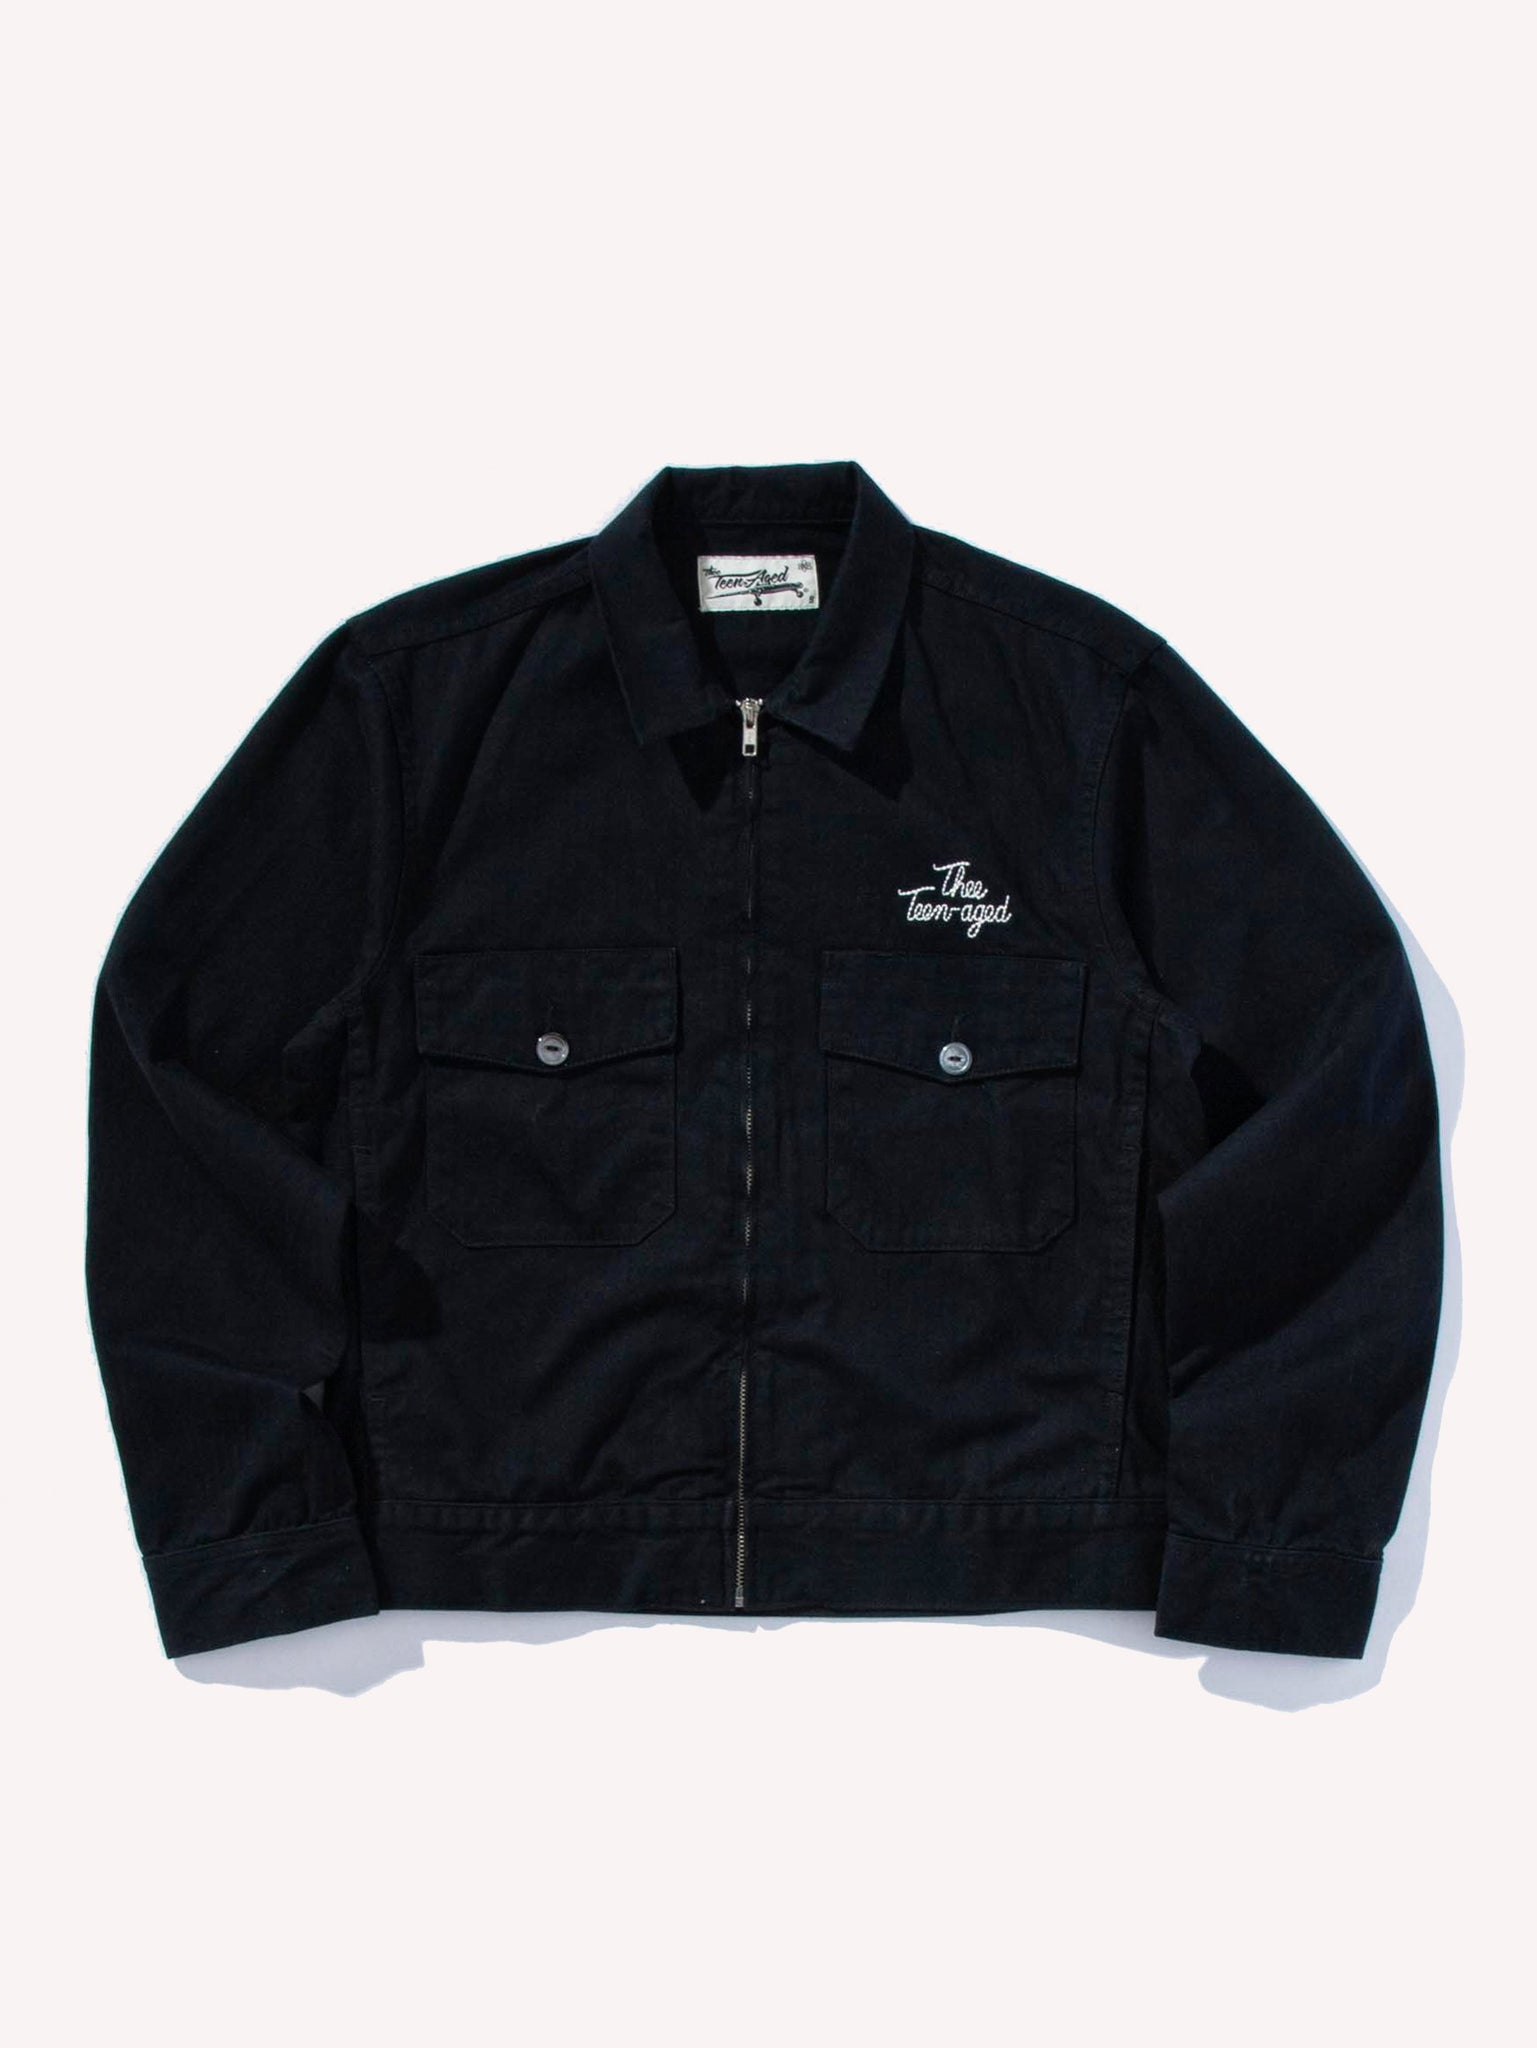 thee-union-jacket